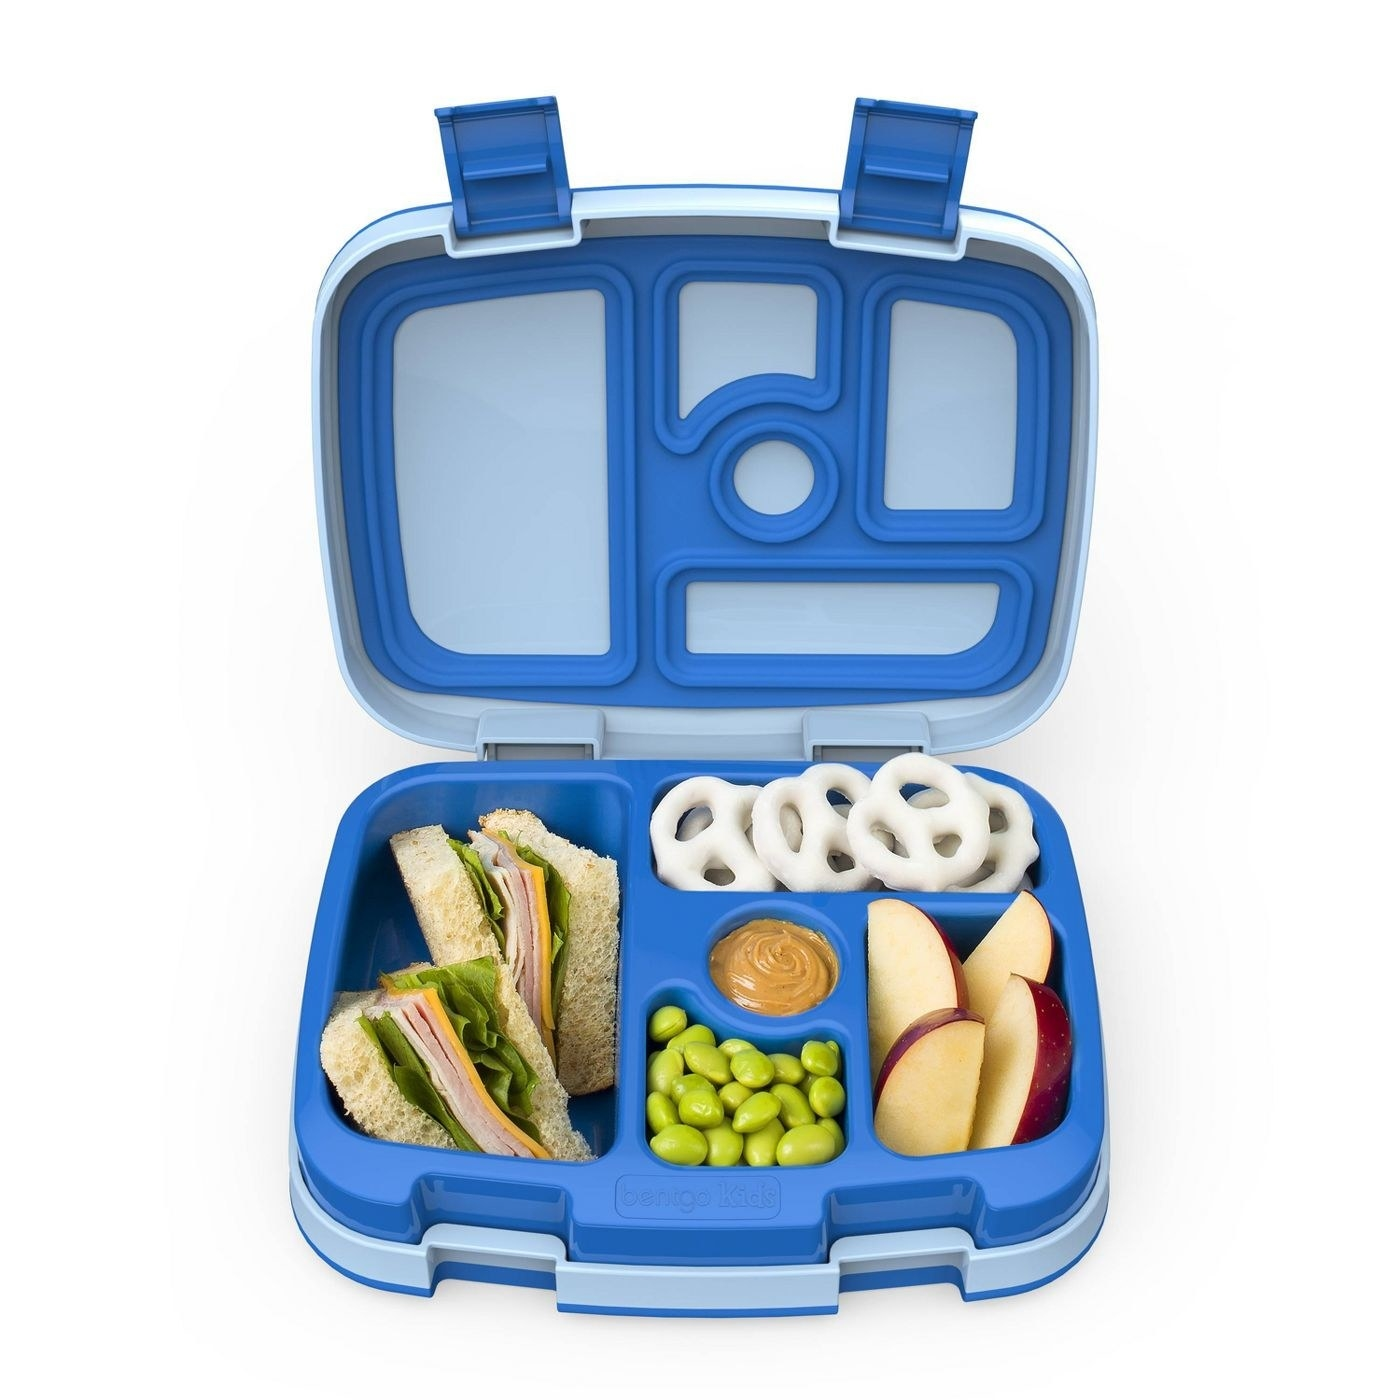 A blue bento box filled with snacks